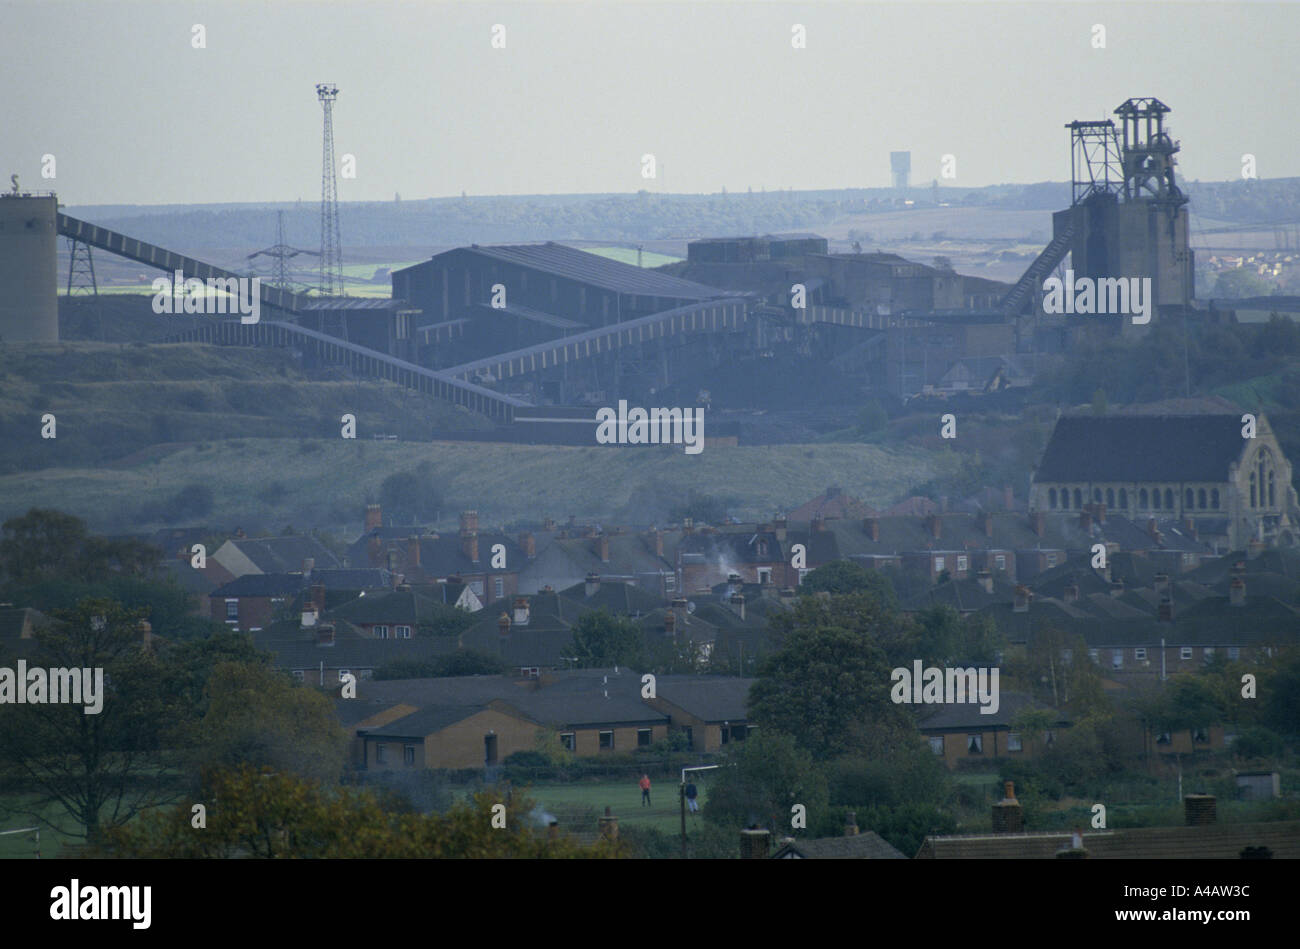 VIEW OF SHIREBROOK COLLIERY, NOTTINGHAMSHIRE, ENGLAND.  THE COAL MINE IS SHORTLY TO CLOSE. 1992 - Stock Image